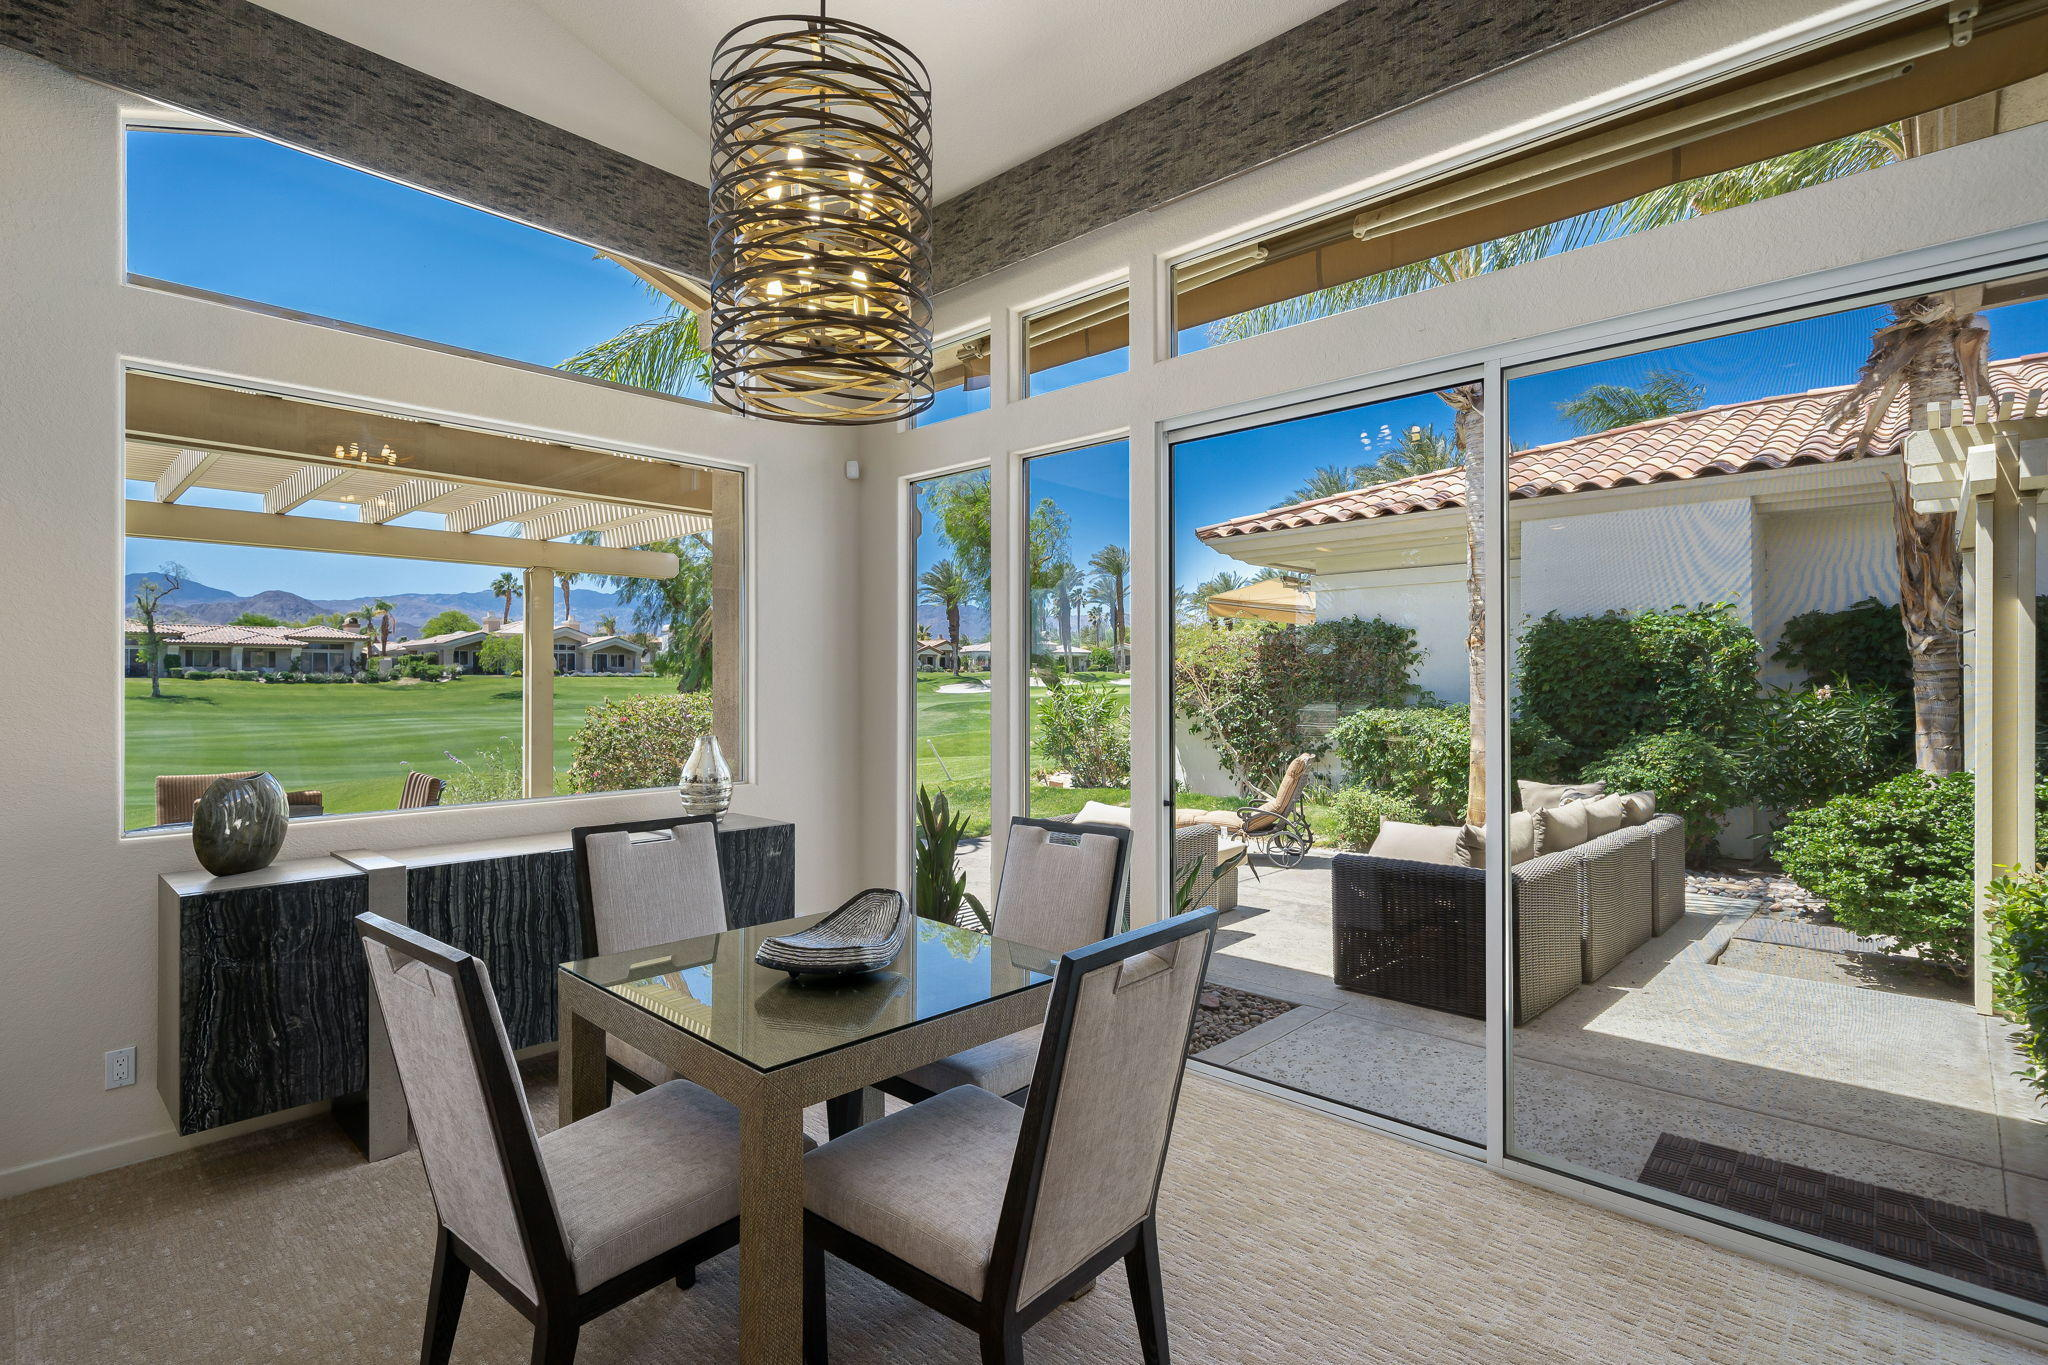 South Updated 4 Bedroom Home! This Smoketree 1 model is modified to include Casita off the atrium. Recently updated with new flooring, kitchen, elecctric shades, updated cabinetry, paint, and more! Sweeping private south mountain views over Grove #4! South-facing patio features pergola, built in BBQ and offers several areas for dining, lounging & entertaining. Open floor plan – living room, 2 dining areas, bar, & kitchen all look out to patio & those great views. Living room features a beautiful stone fireplace and is open to bar and dining area. Dining areas open out on to the patio – perfect for entertaining! Kitchen has granite counters, bar seating, updated cabinetry and top-of-the line stainless appliances. No steps at entry or foyer! Beautiful atrium off the front entry. Casita off the atrium is currently set up as an office and features Murphy bed and ensuite updated bathroom. Master Bedroom has ensuite bathroom with dual vanities, large walk-in closet, shower + tub. 2 additional guest rooms provide plenty of room and privacy for your guests – 1 guest room is ensuite. Attached 2 car + golf cart garage – epoxy floors & storage. Community pool/spa just a few doors away. Offered furnished per inventory. Club or Golf membership available for this home.